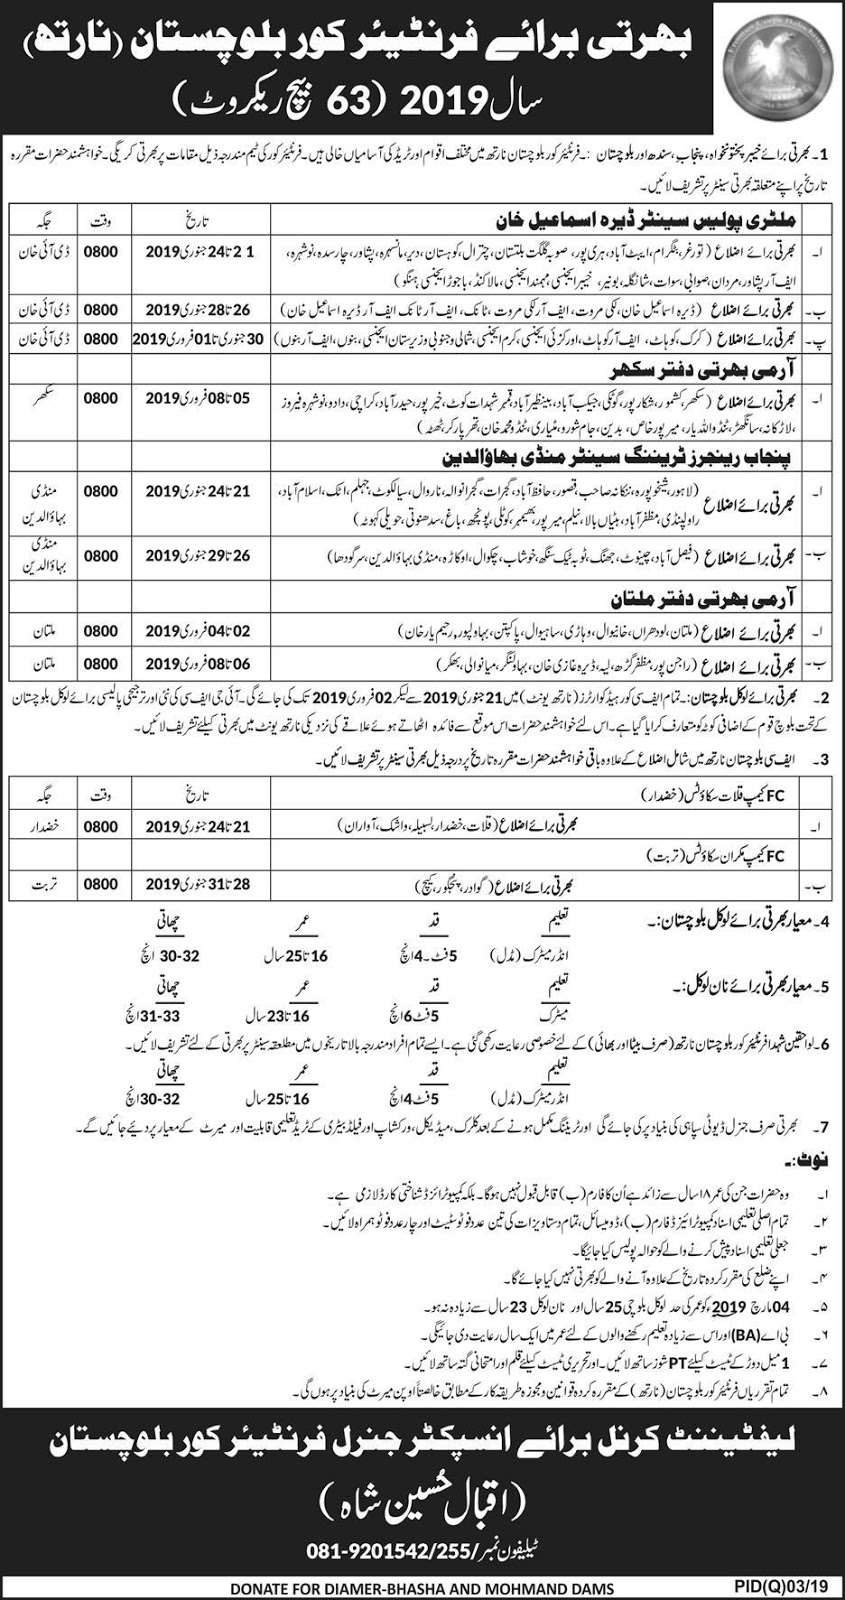 balochistan jobs,fc balochistan,jobs,jobs in balochistan,balochistan,jobs in pakistan,pakistan jobs,balochistan fc jobs,jobs in fc,fc balochistan jobs 2019,army jobs,fc balochistan new jobs 2018,fc balochistan 62 batch jobs 2018,fc jobs,latest jobs 2018,fc jobs 2018,pak army jobs,balochistan jobs 2019,government jobs,pakistan jobs bank,frontier corps balochistan,frontier corps balochistan jobs balochistan jobs,jobs in pakistan,jobs,fc balochistan jobs 2019,fc balochistan,latest jobs 2019,pak army jobs,balochistan,fc jobs 2018,pakistan jobs,fc balochistan new jobs 2018,balochistan fc jobs,fc balochistan 62 batch jobs 2018,pakistan army jobs,frontier corps balochistan jobs 2019,balochistan police jobs 2019 for 300+ jr clerks,army jobs,balochistan job 2019,latest jobs in fc 2019 pak army jobs,jobs in pakistan,balochistan,government jobs,pakistan jobs,latest jobs 2019,new jobs 2019,latest jobs in pakistan,frontier corps balochistan jobs 2019,jobs,new jobs in frontier core balochistan 2019,latest jobs in fc 2019,latest jobs in frontier core balochistan 2019,balochistan jobs,balochistan aseembly 2019,pak air force jobs ( paf jobs),pakistan army jobs,teaching jobs